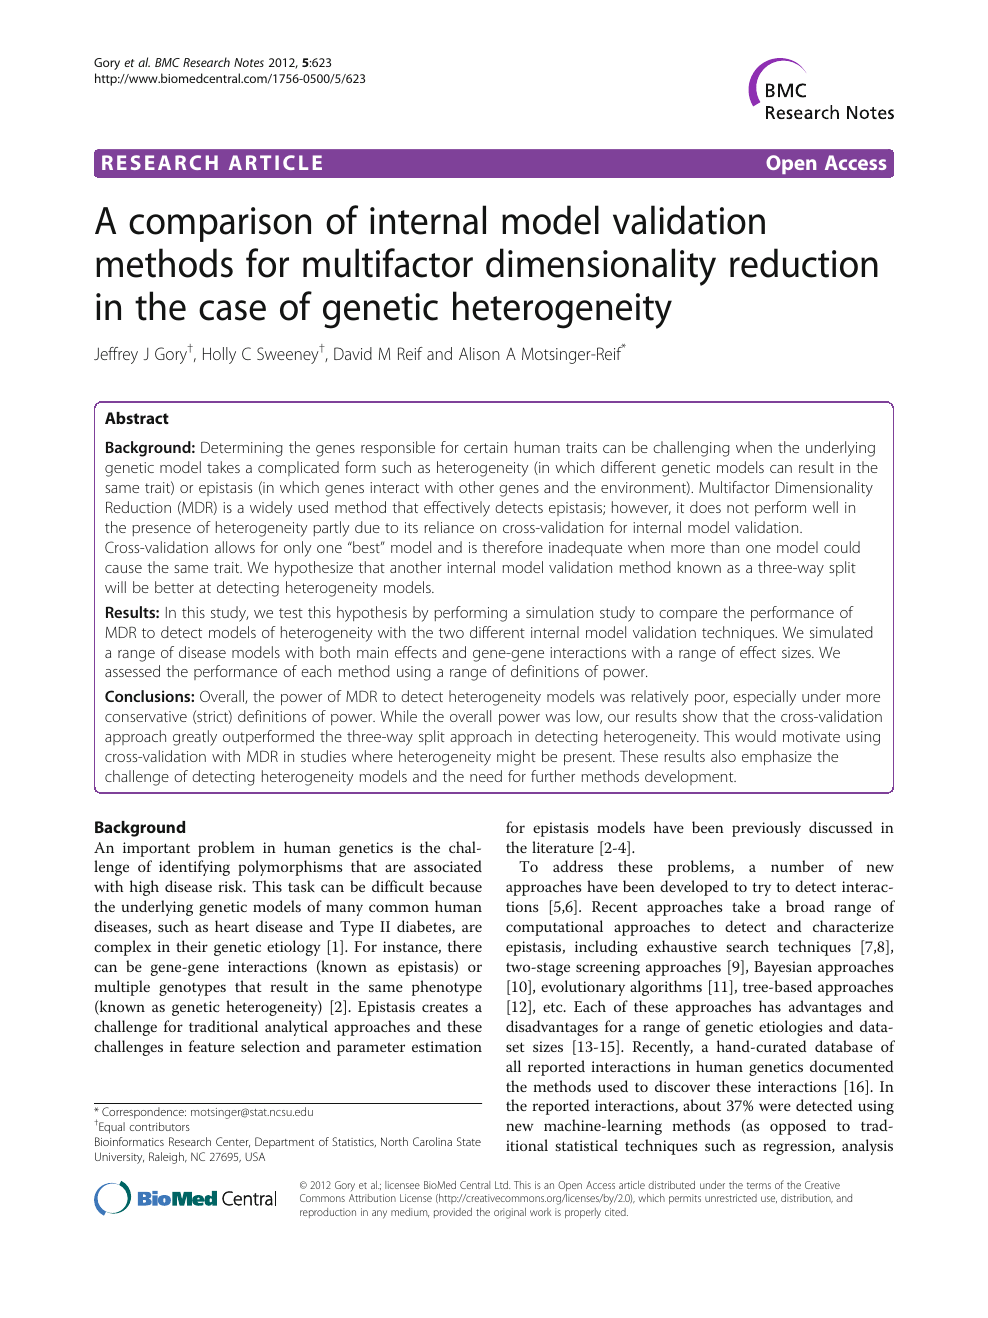 A comparison of internal model validation methods for